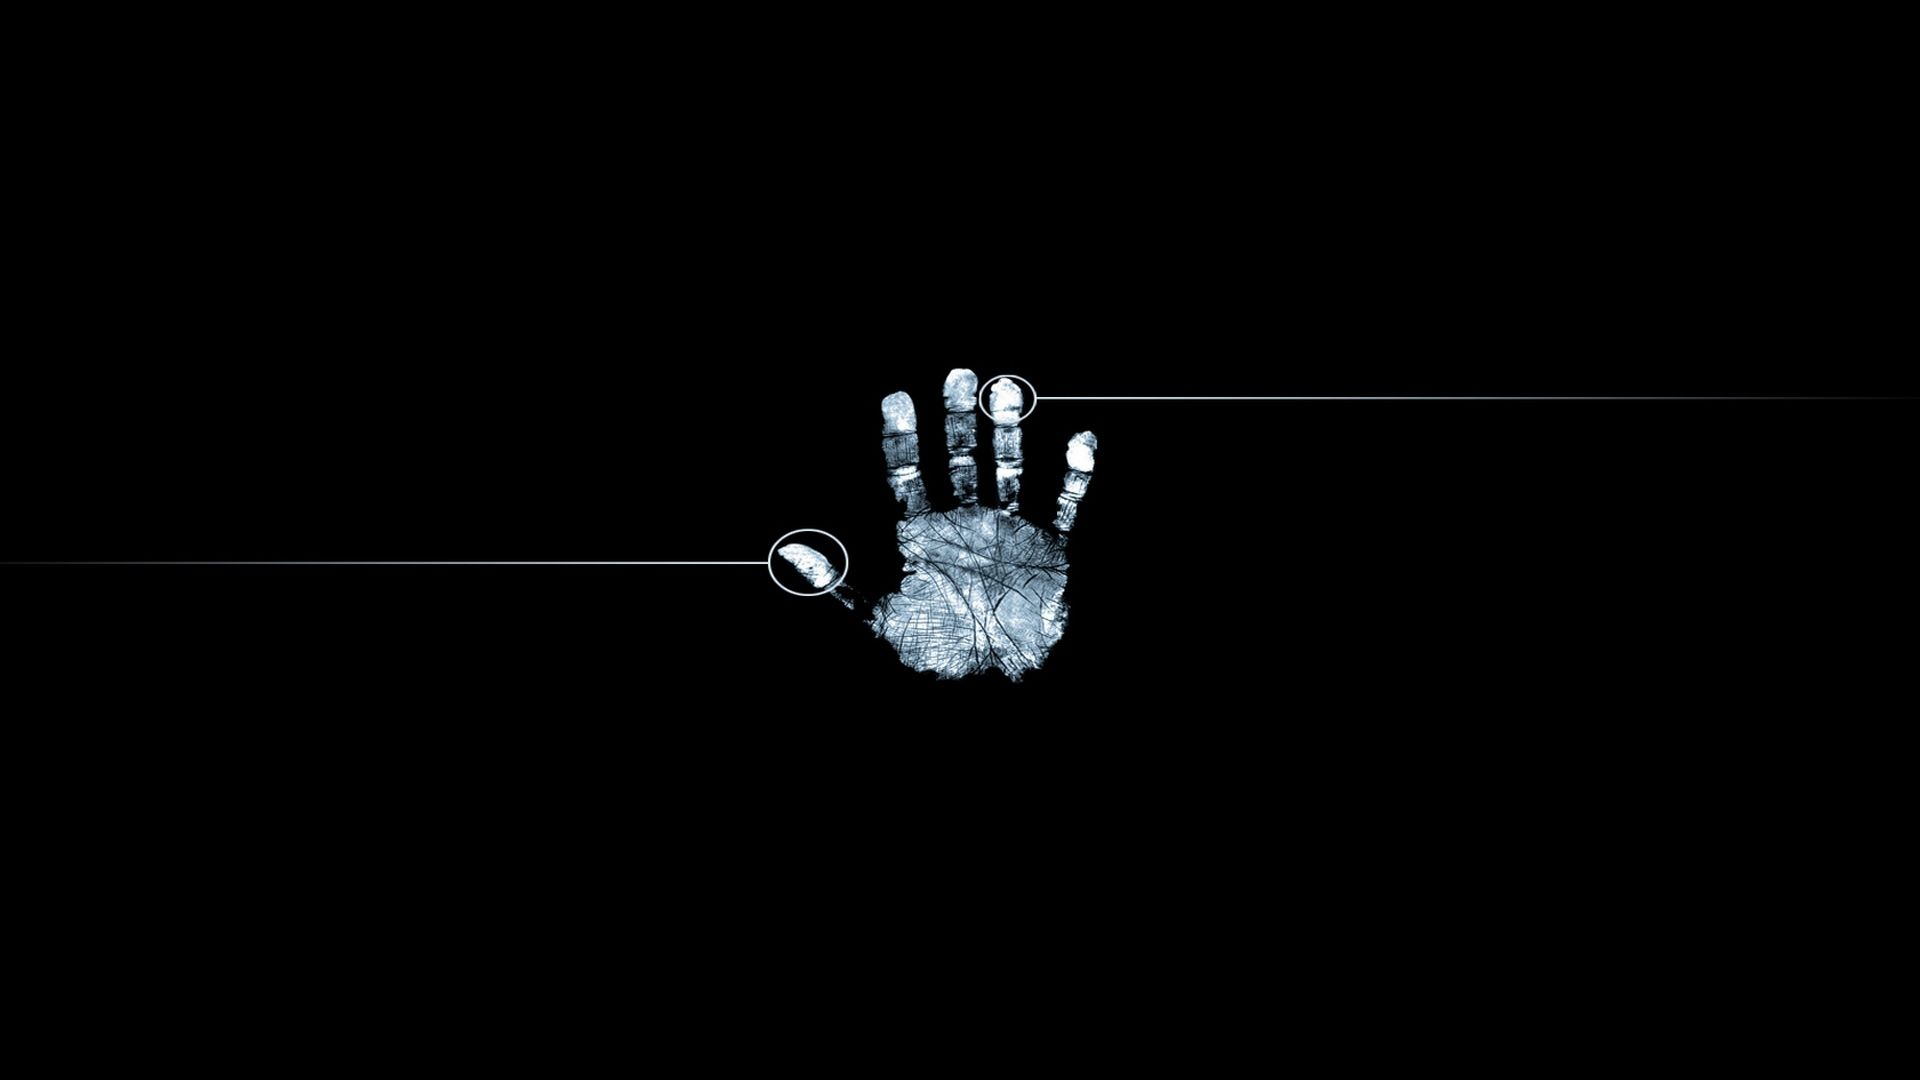 Maxworld Black Hand 1920 1080 Pure Black Wallpaper Desktop Wallpaper Black Hd Dark Wallpapers